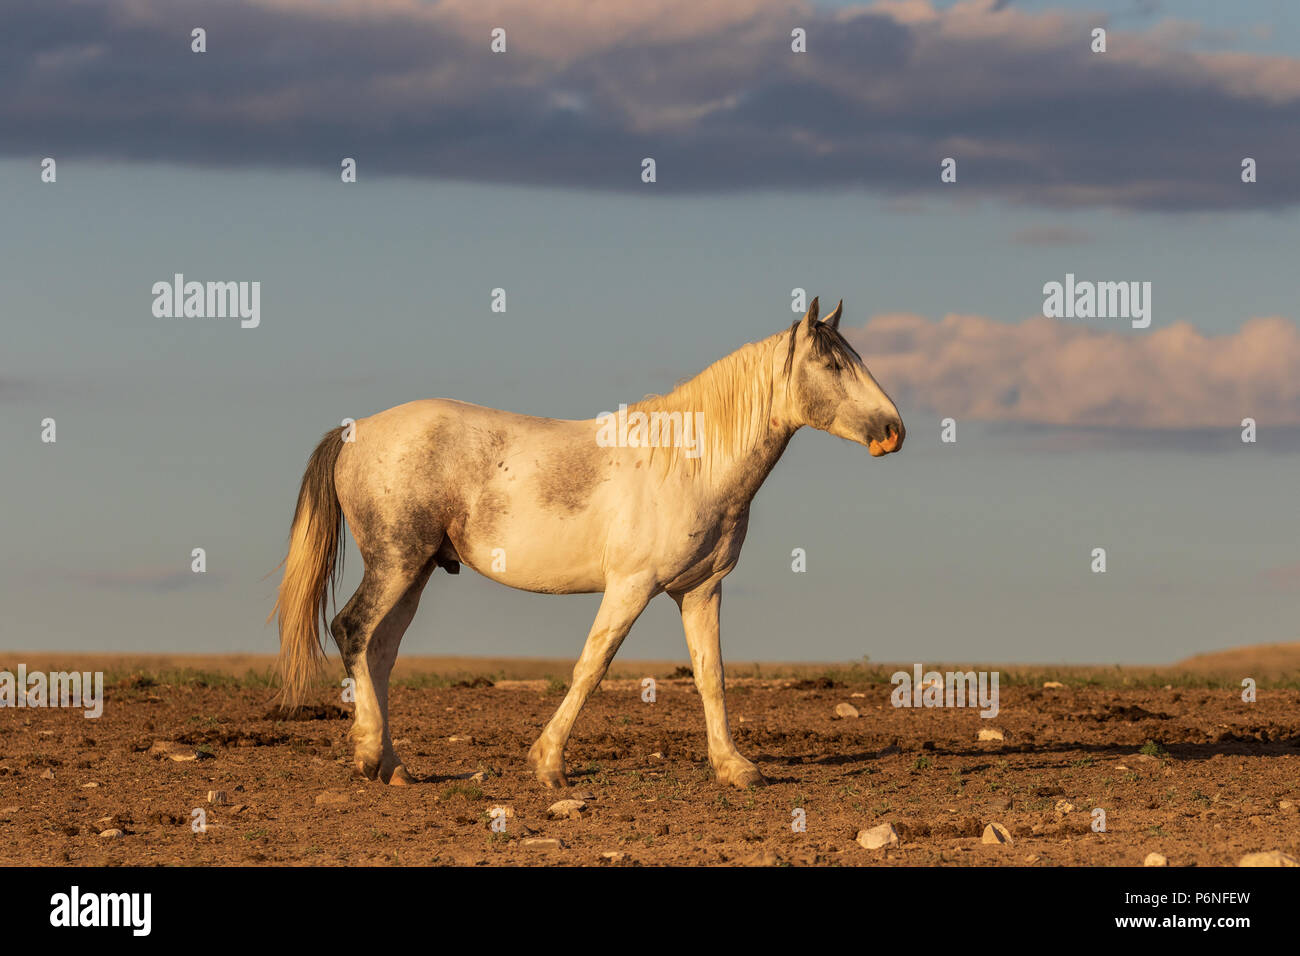 Wild Horse Stallion Photo Stock